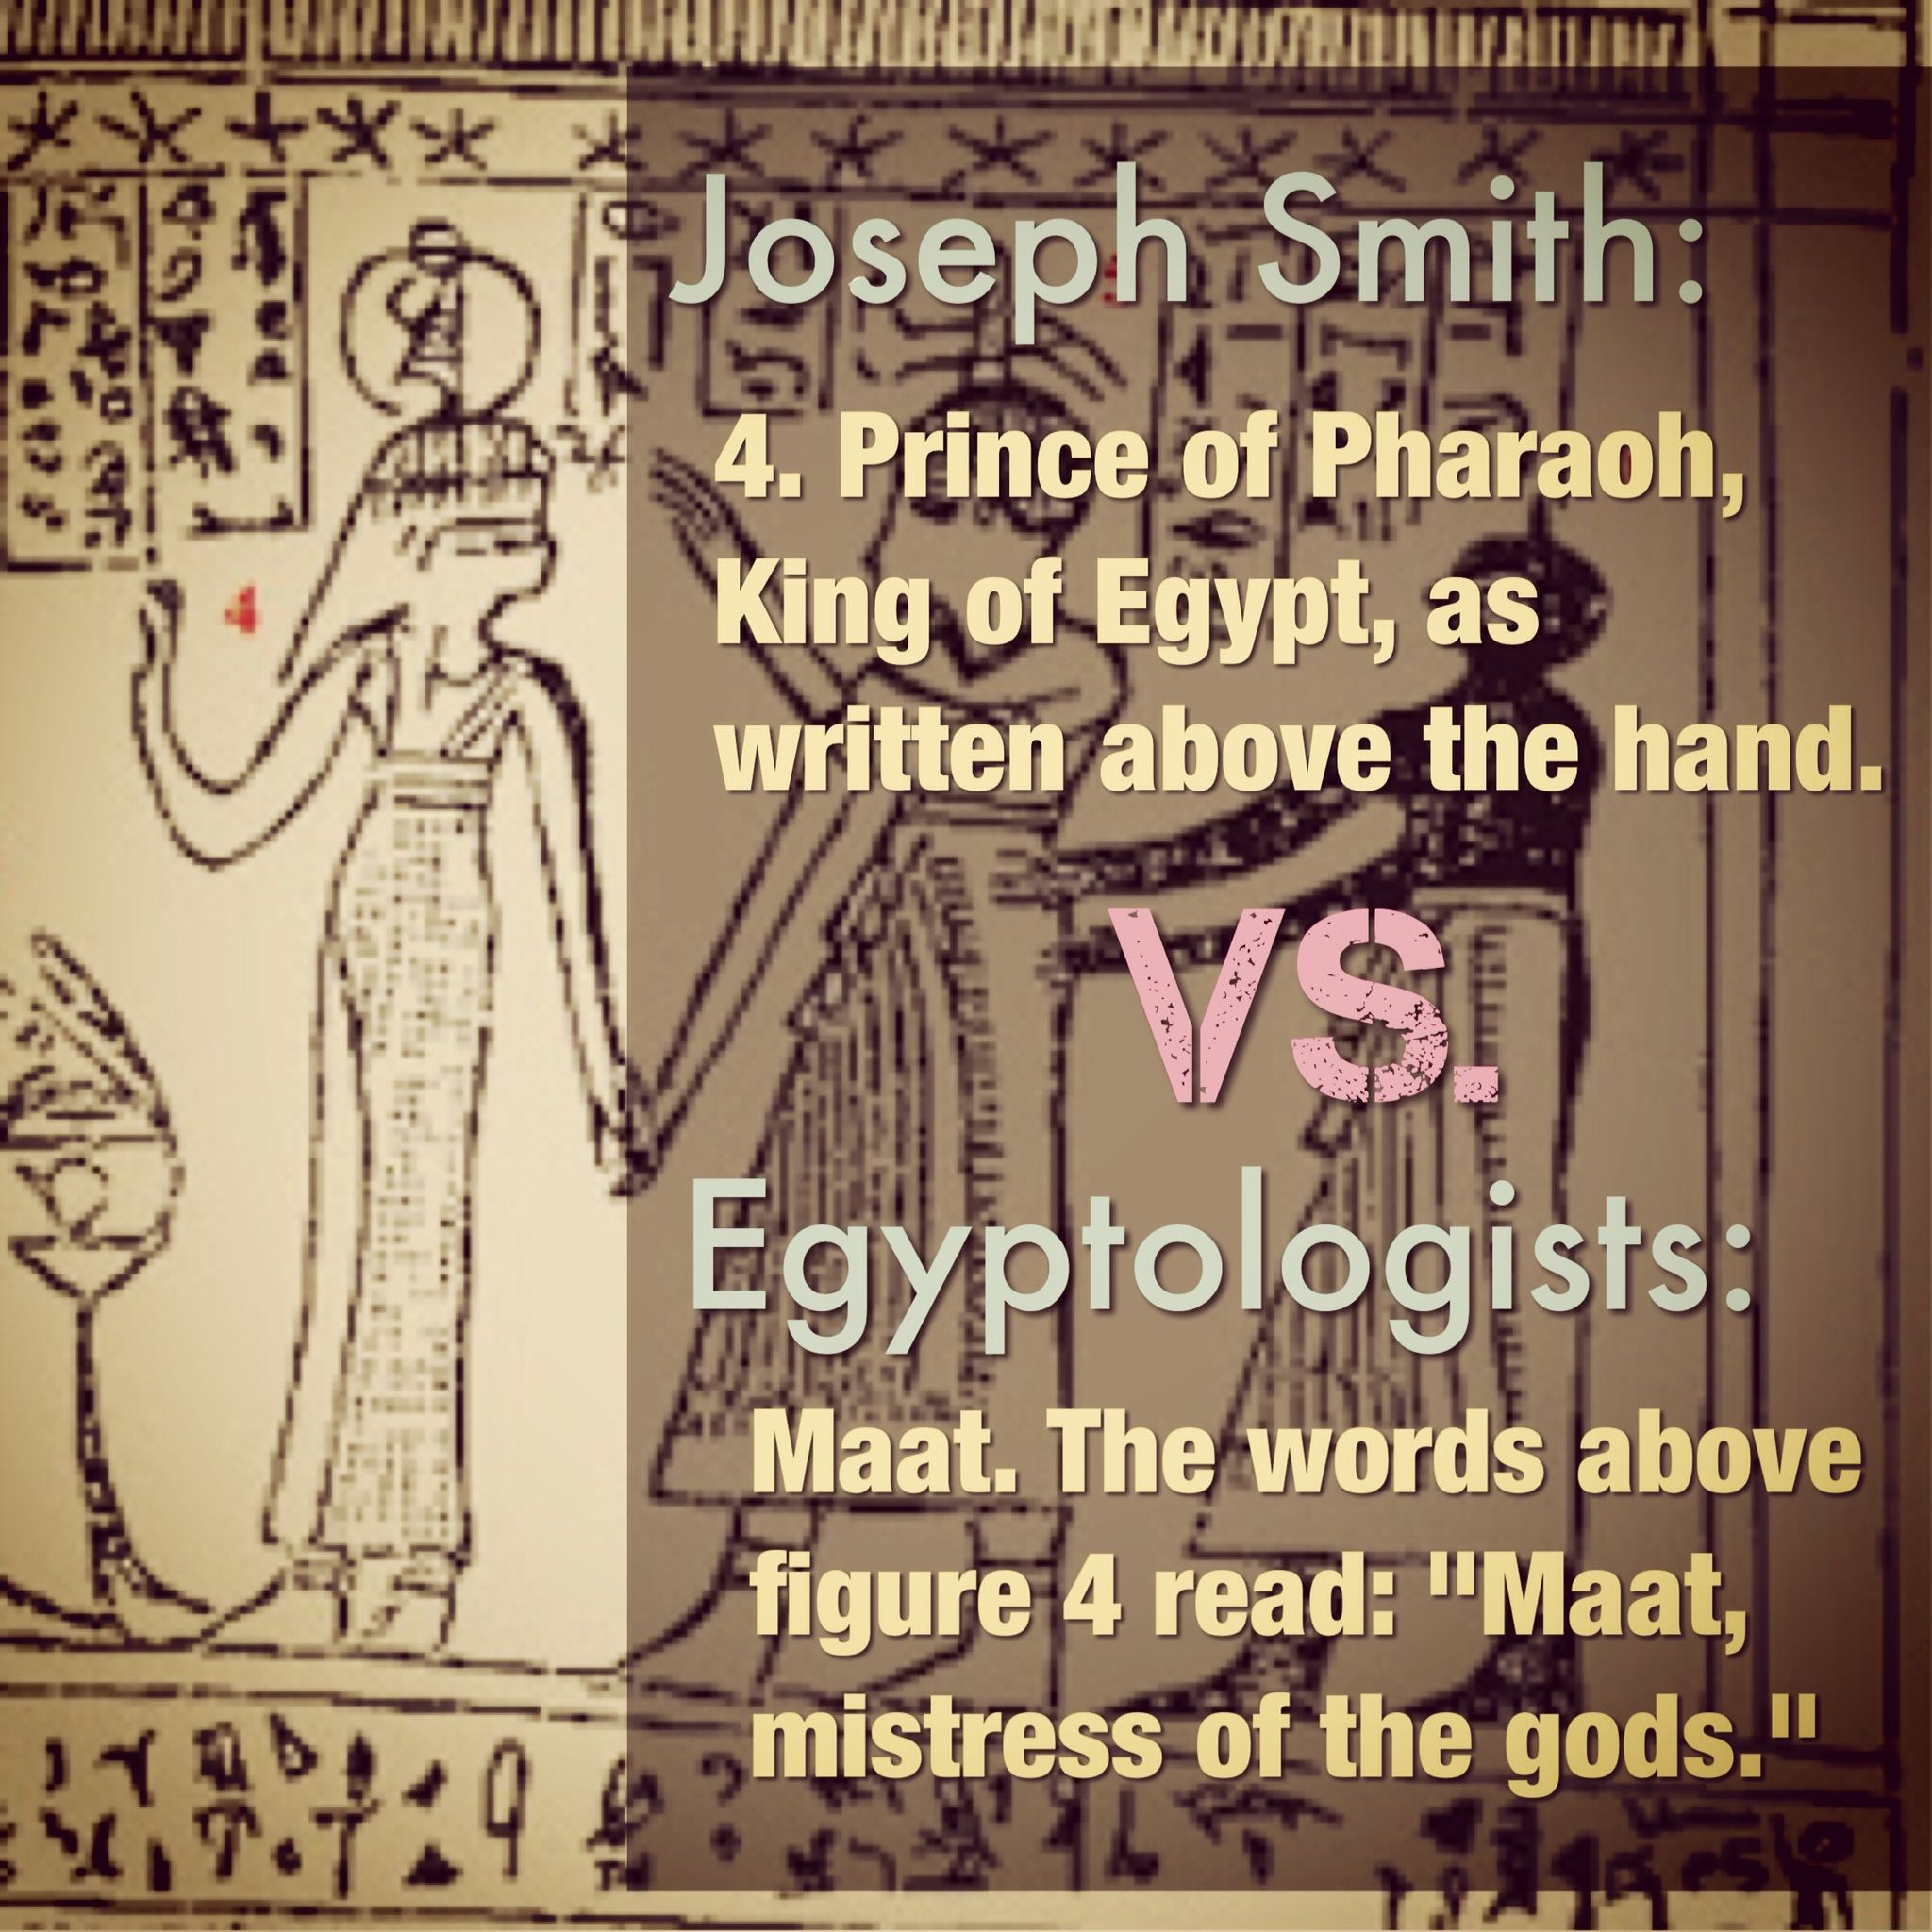 prince of pharaoh or maat?